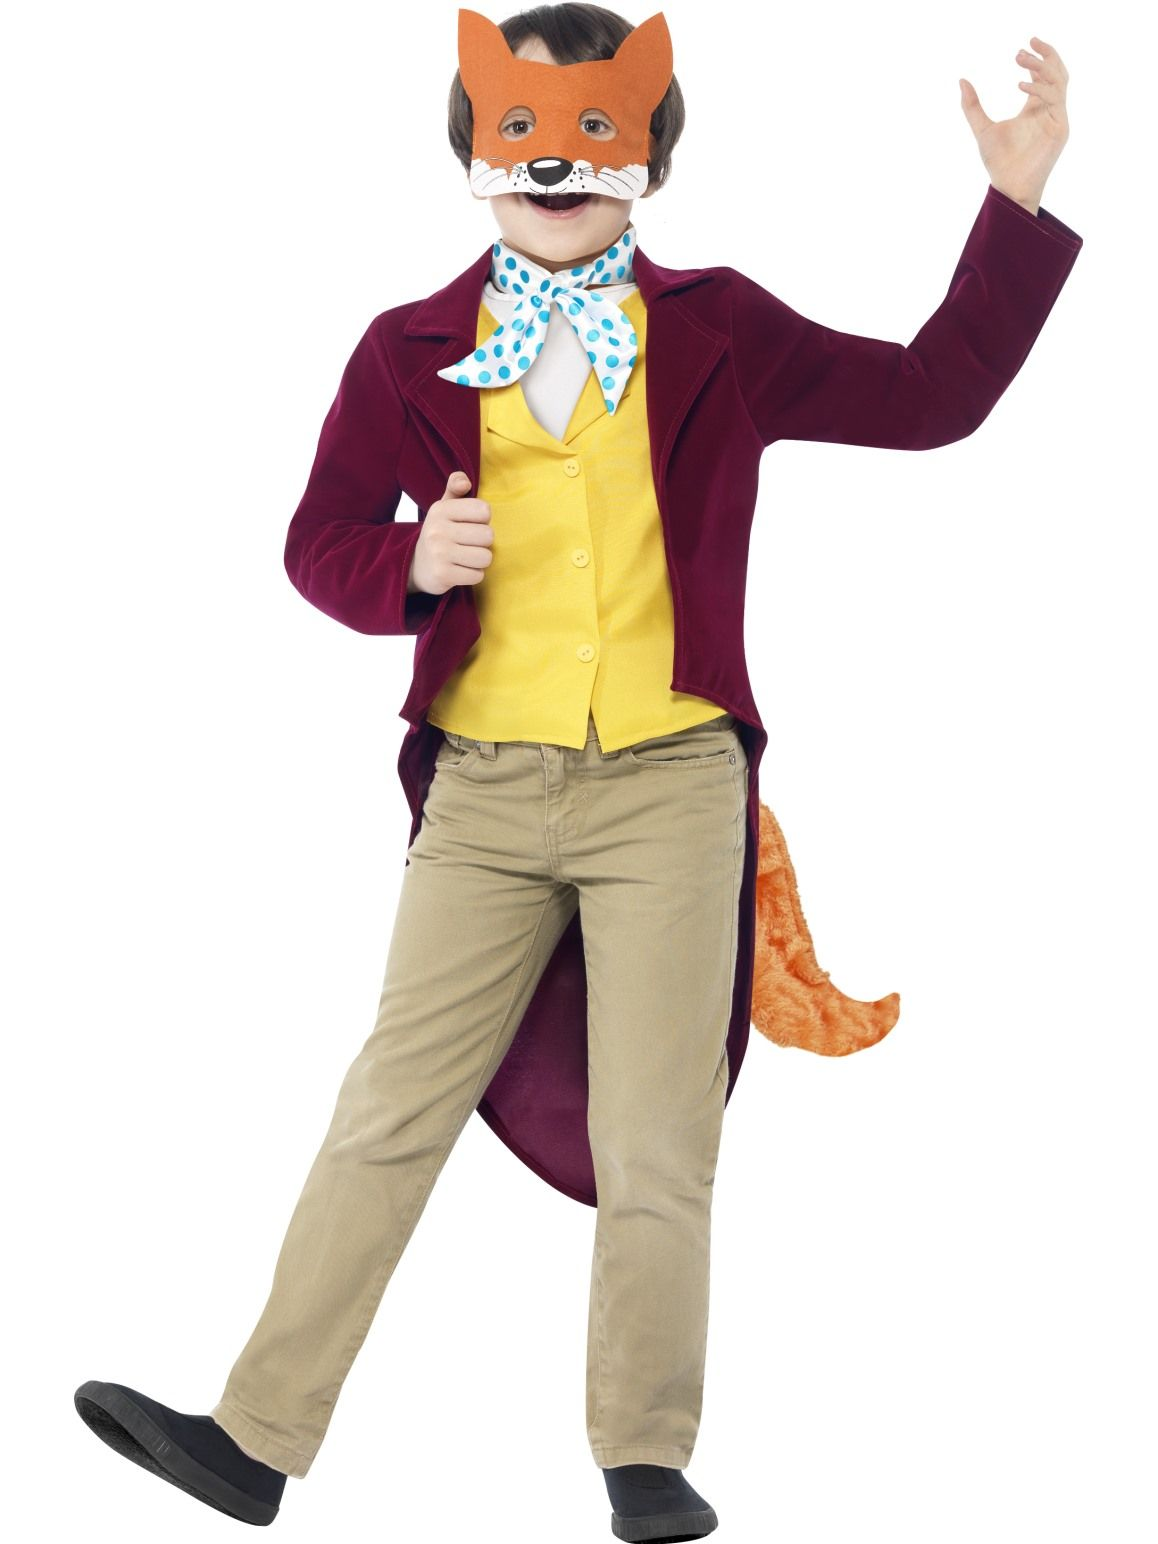 Fantastic Mr Fox Roald Dahl Child Costume  - Buy